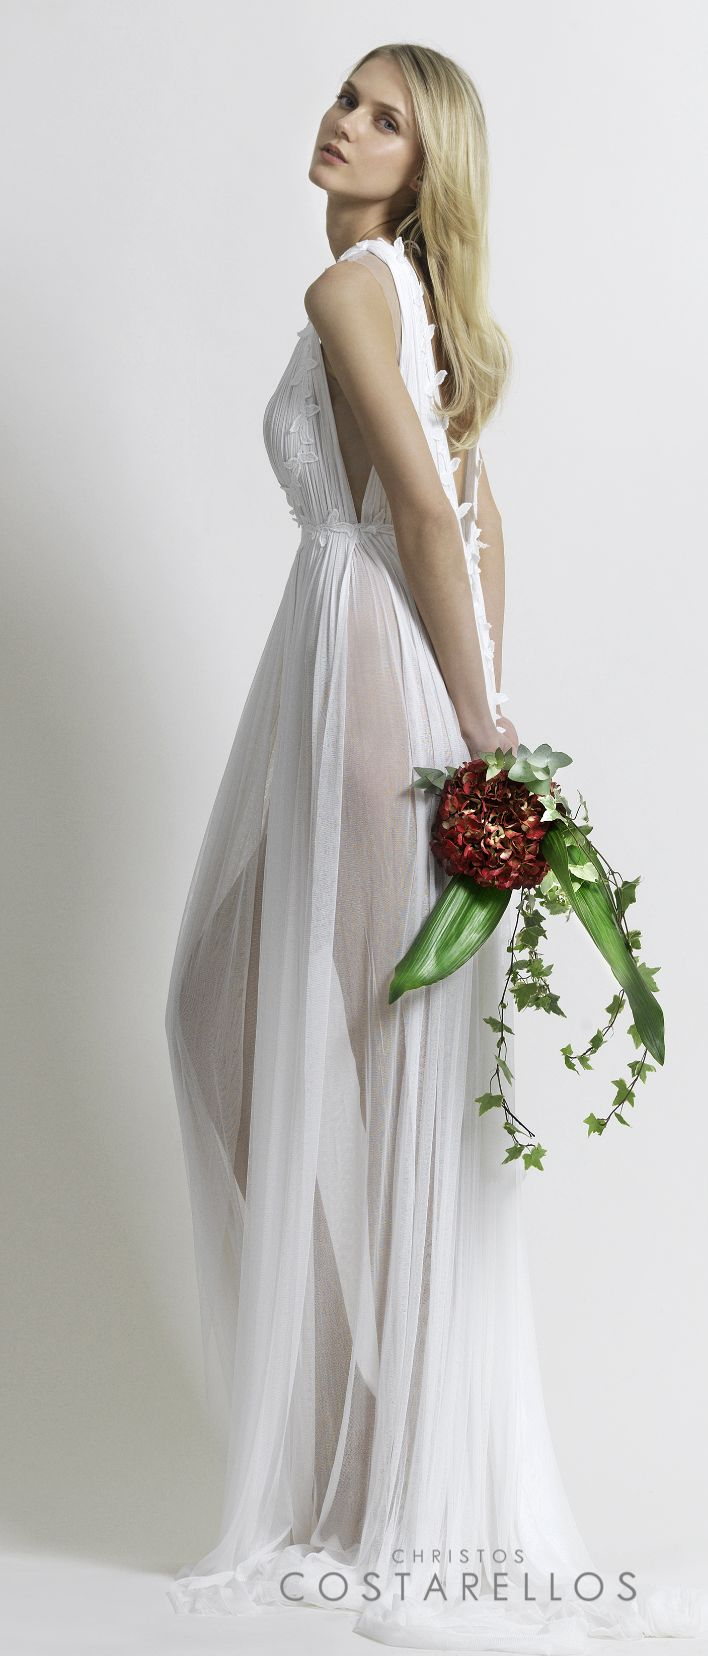 Christos Costarellos Bridal 2014 collection. This ethereal wedding dress is made of silk tulle and guipure lace. Code: BR14 26. For stockists please visit www.costarellos.com #christoscostarellos #costarellos #costarellosbride #bridaldress #bridalgown #weddingdress #weddinggown #lace #bridetobe #bridalmarket #bridalfashion #wedding